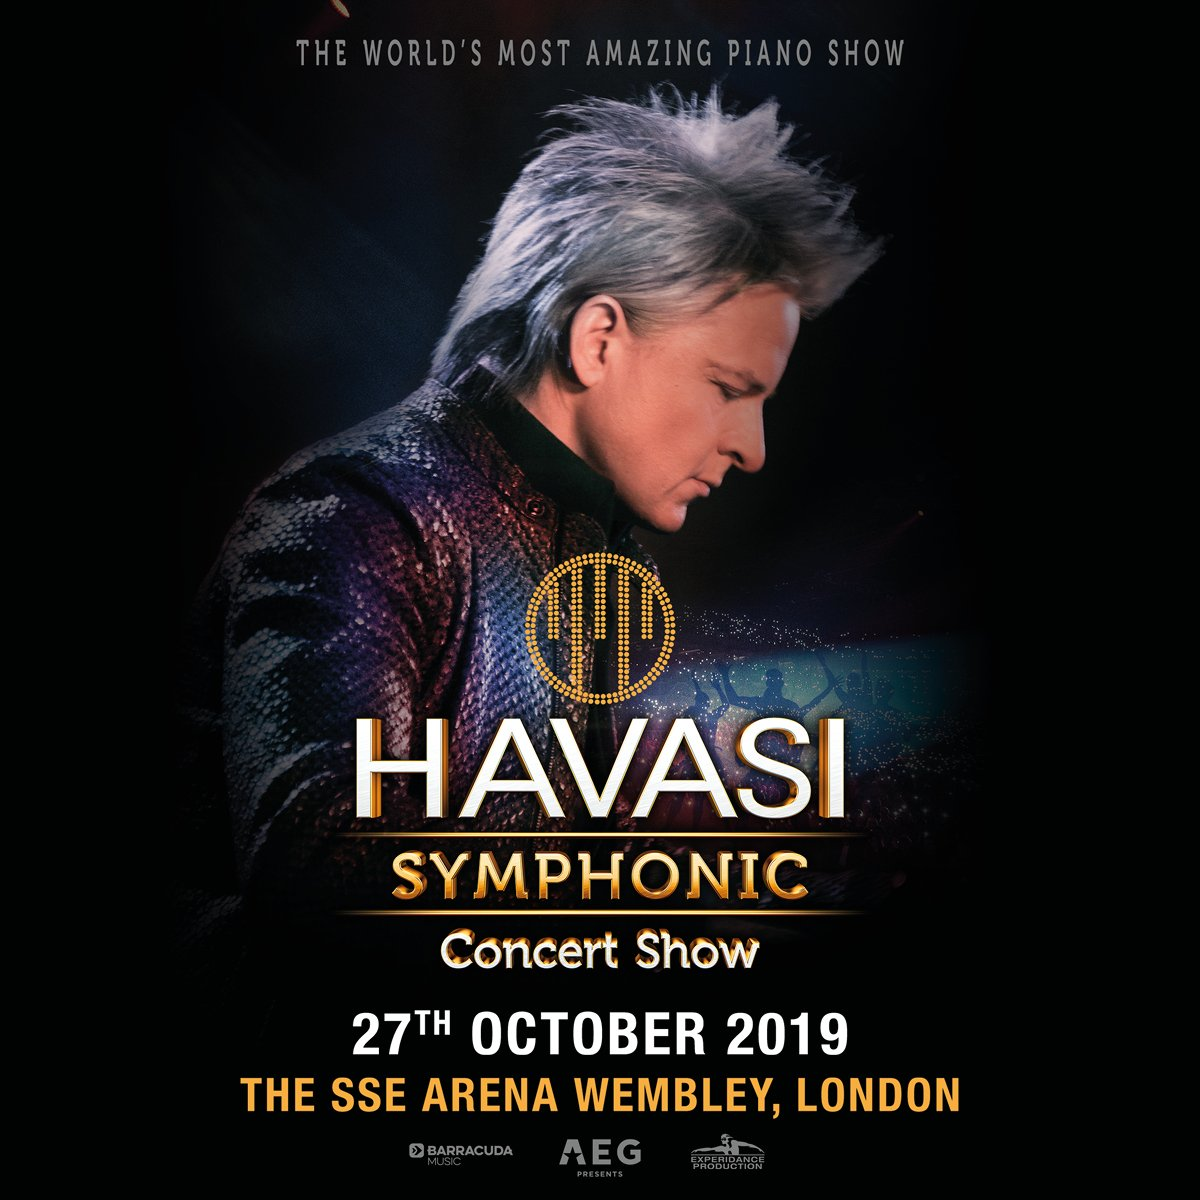 The world's most amazing piano show debuts at The @ssearena, Wembley.  See HAVASI here in October.  Tickets at the link on Friday:  https://t.co/Wh5pqcd2iE